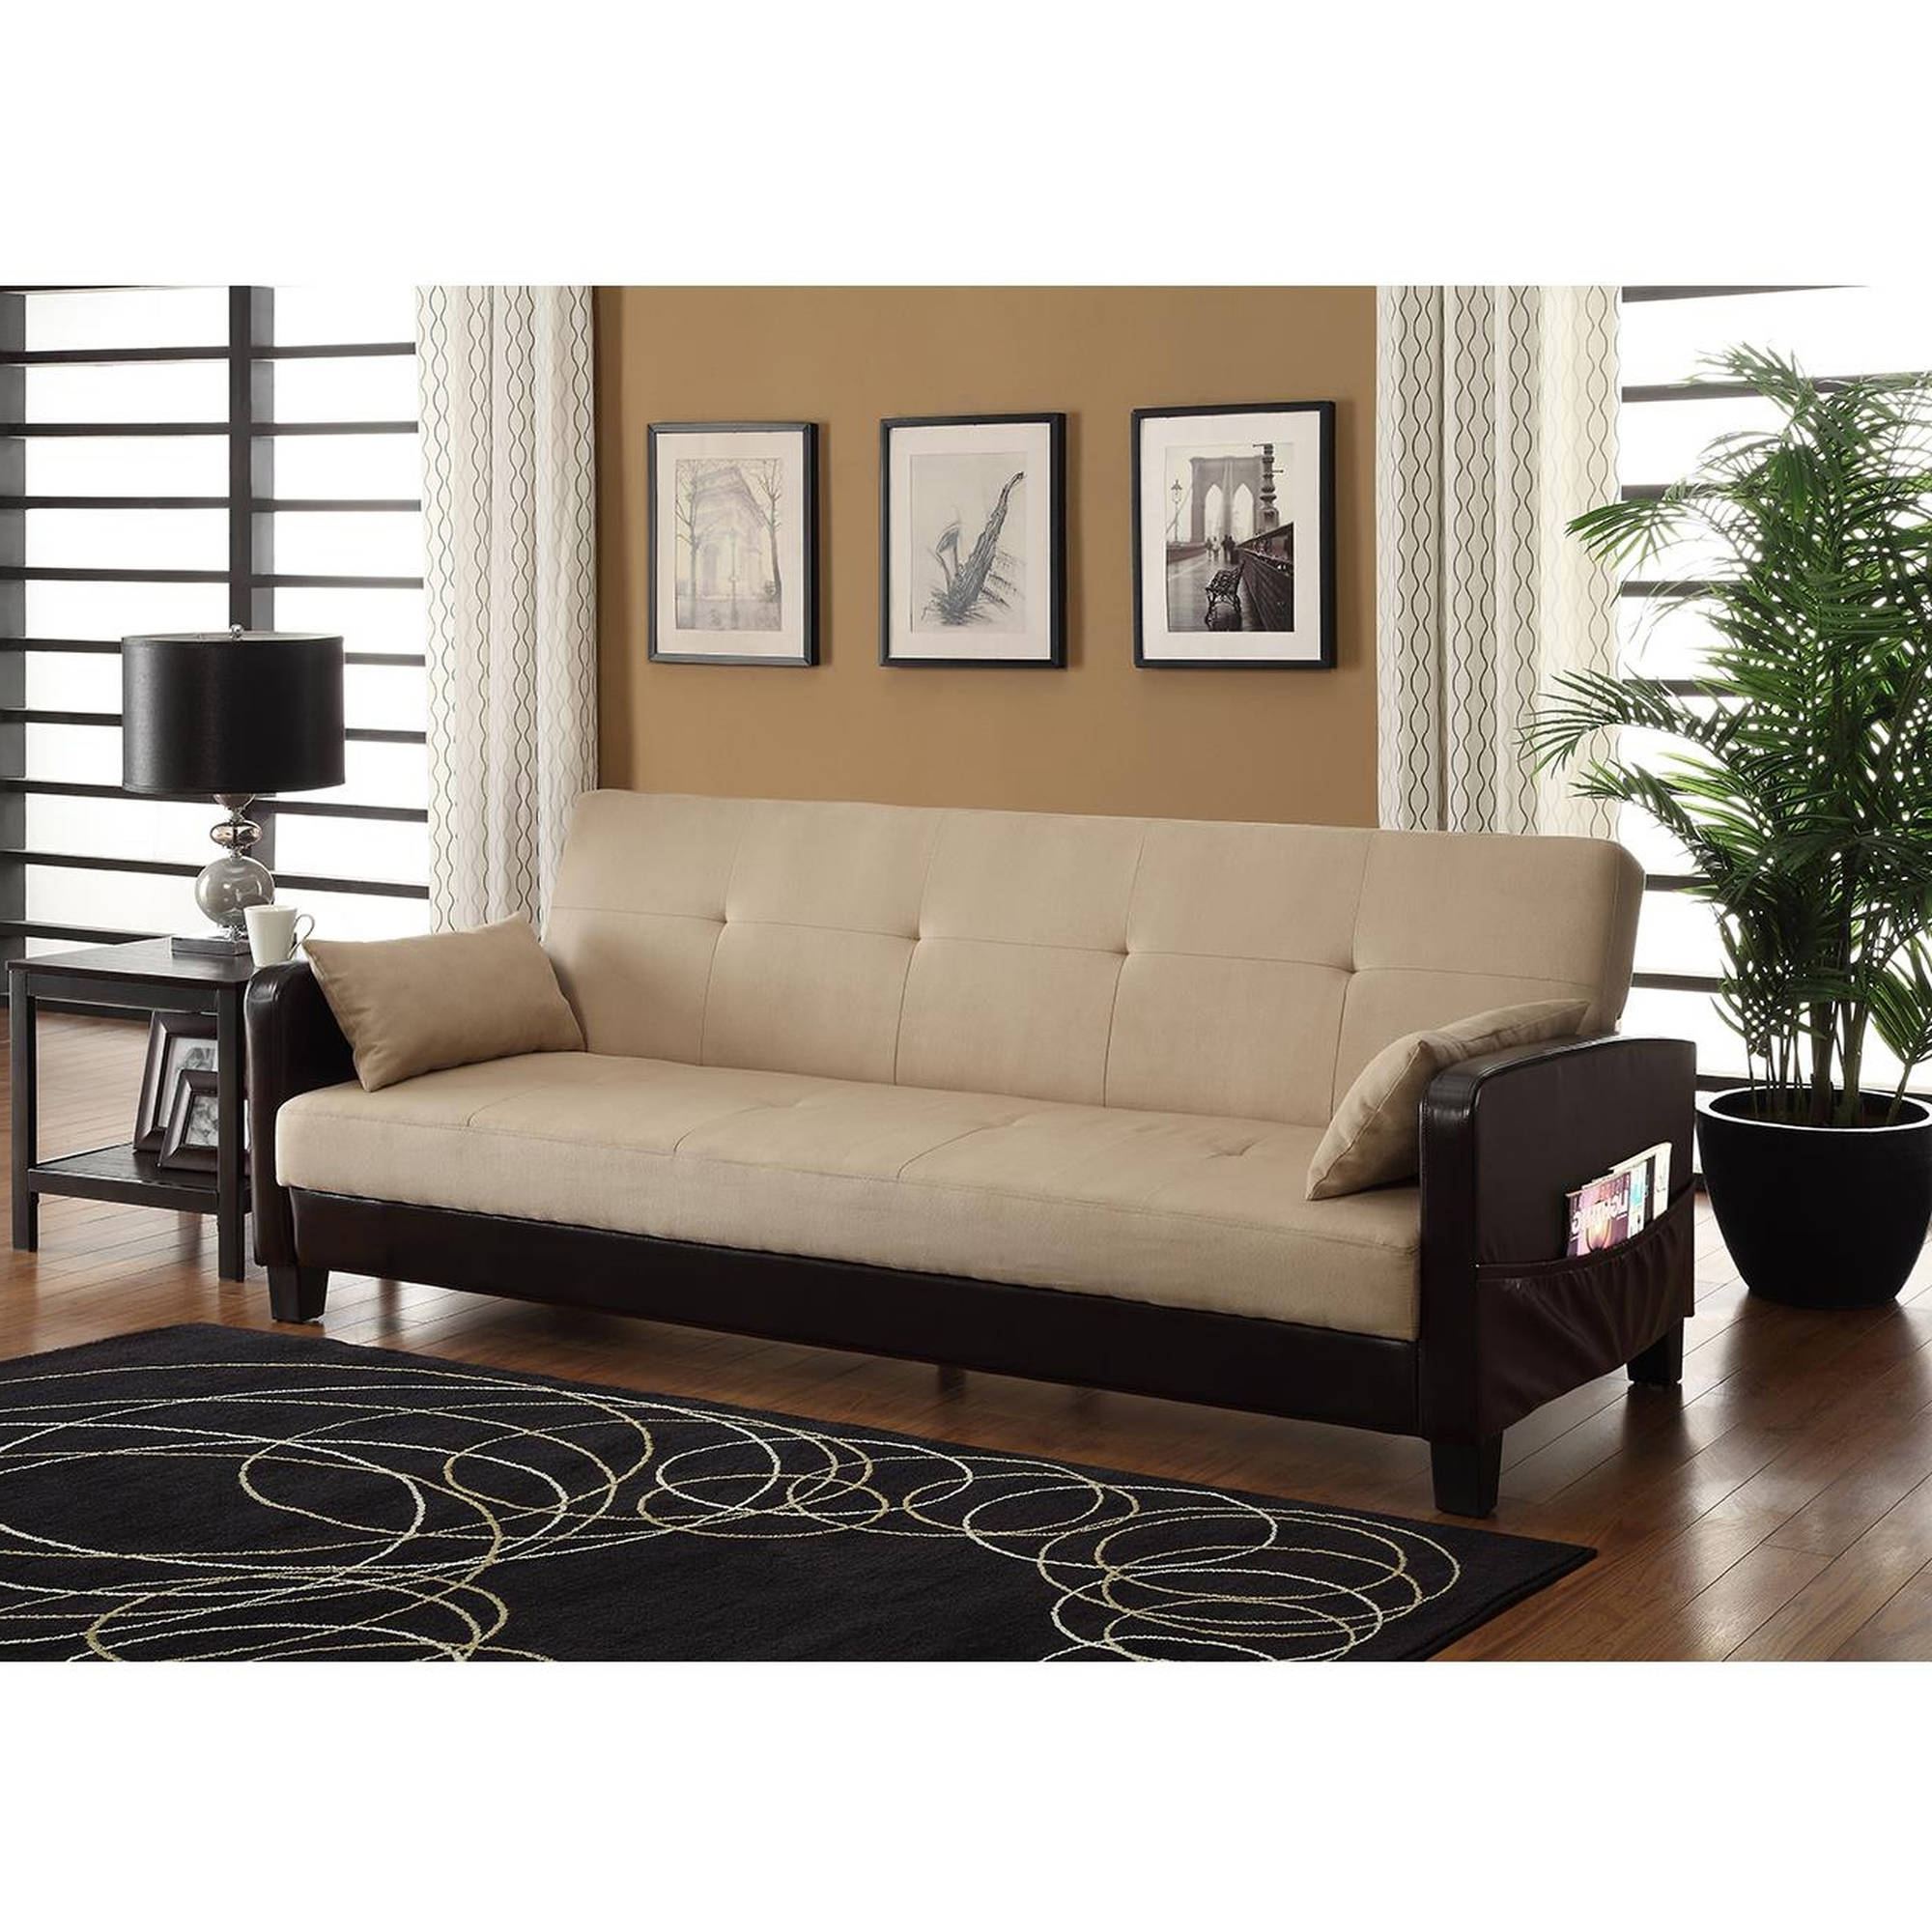 Queens Ny Sectional Sofas with Widely used Sectional Sleeper Sofas